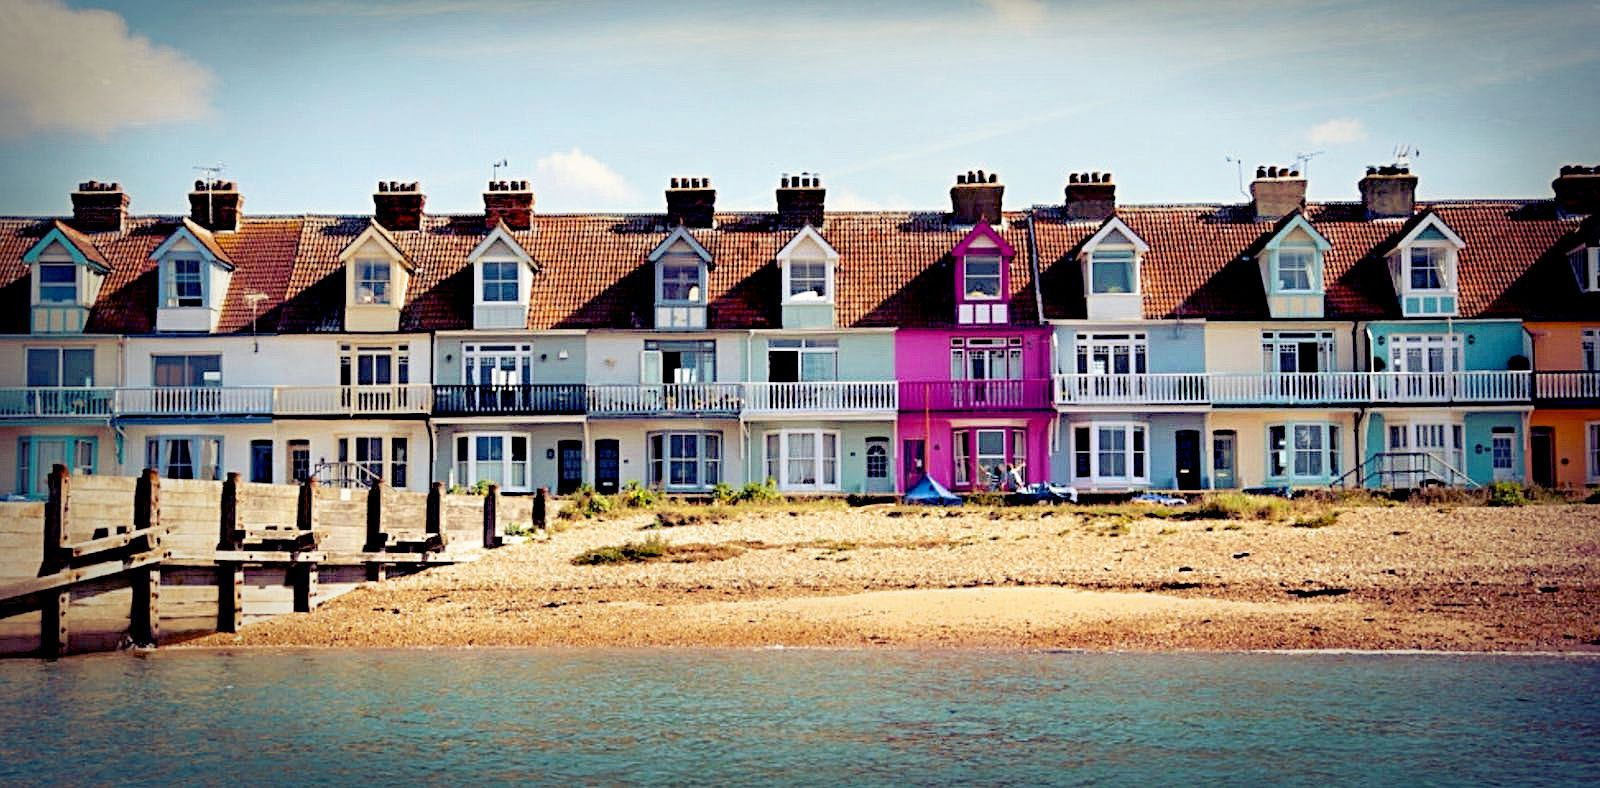 Les voyages de Caroline.... Angleterre, Whitstable